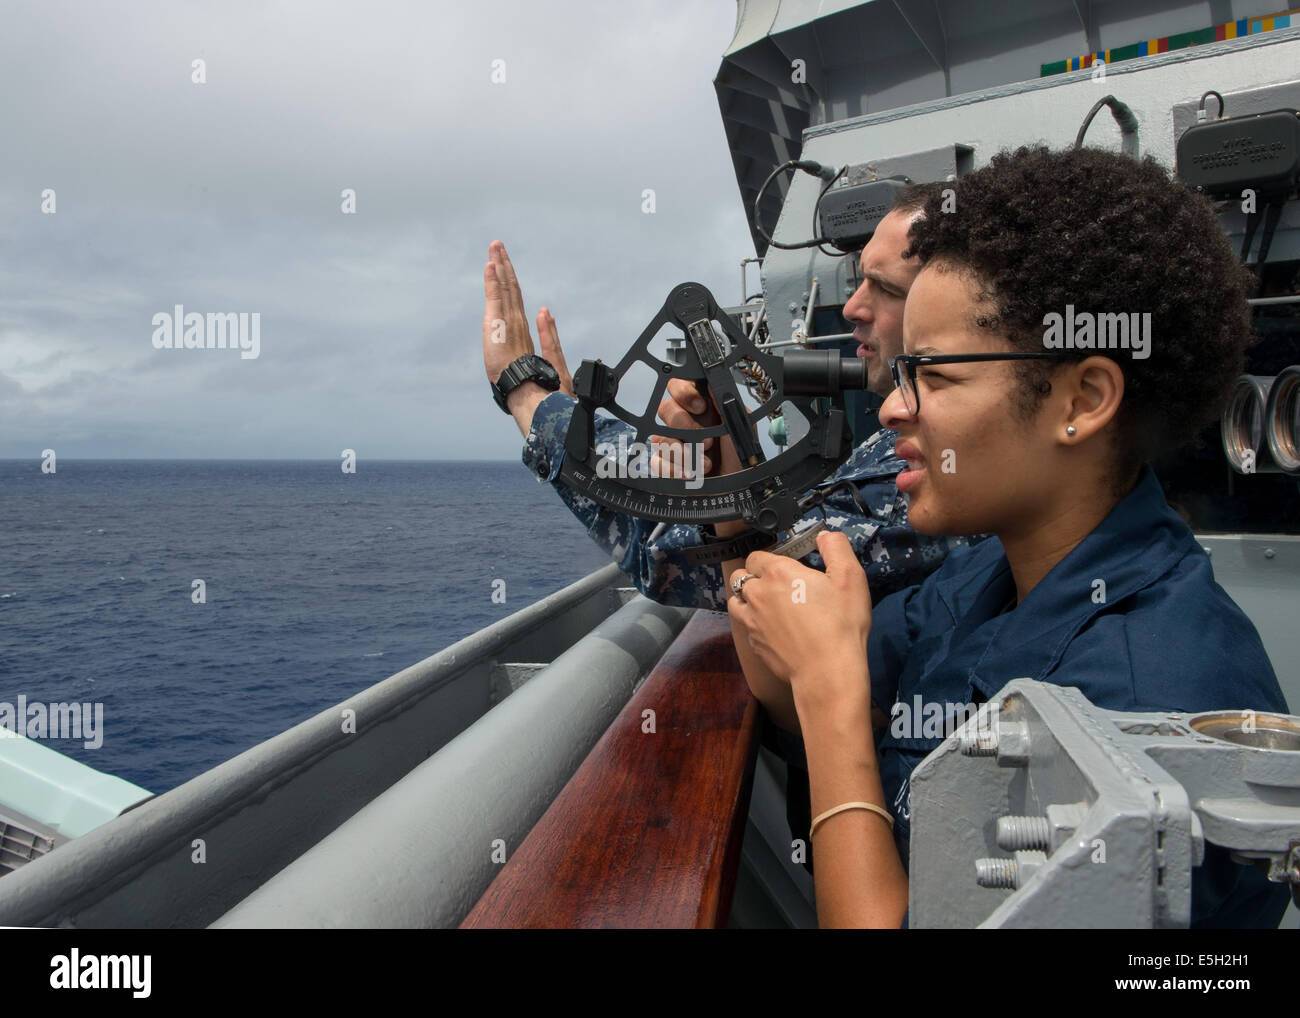 U.S. Navy Quartermaster 1st Class Clarence Ilijic, left, teaches Quartermaster Seaman Eden Boyd how to operate a - Stock Image